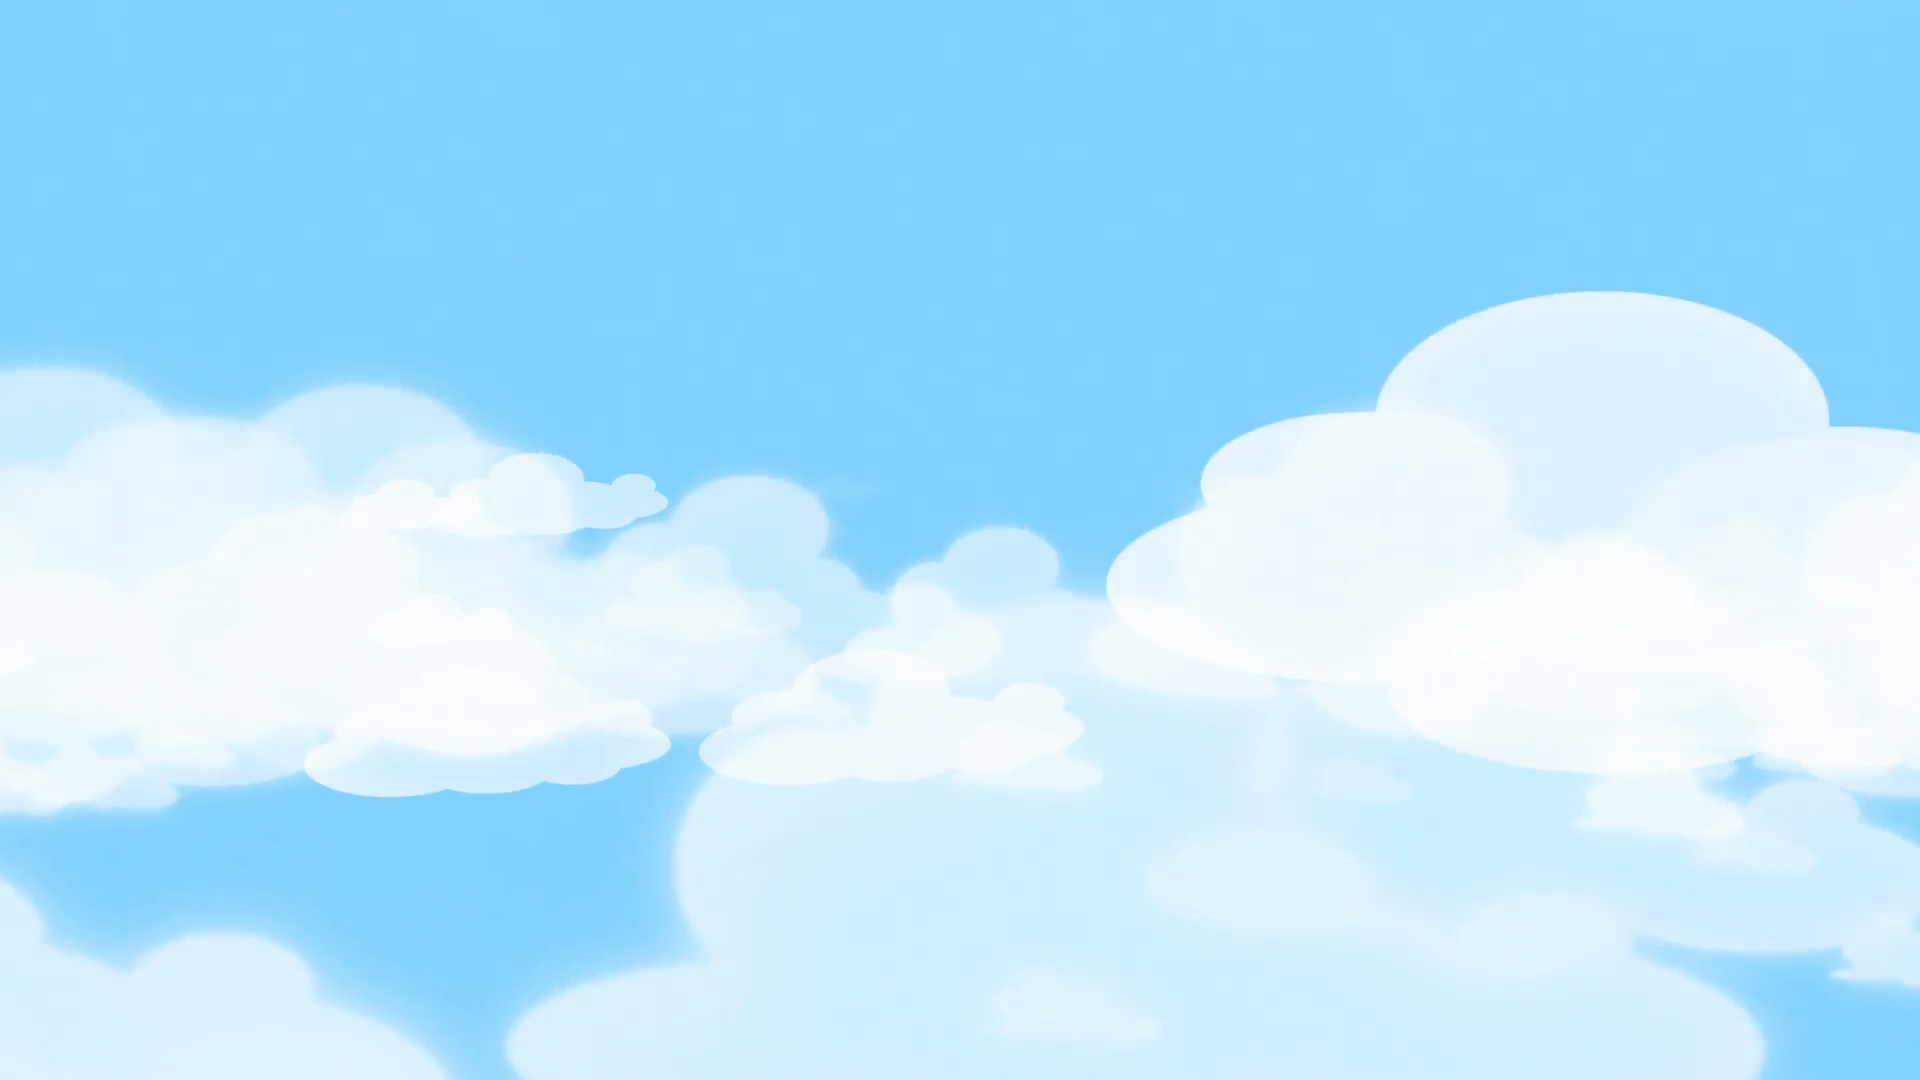 Download Free png Cartoon Clouds and Blue Sky Motion.